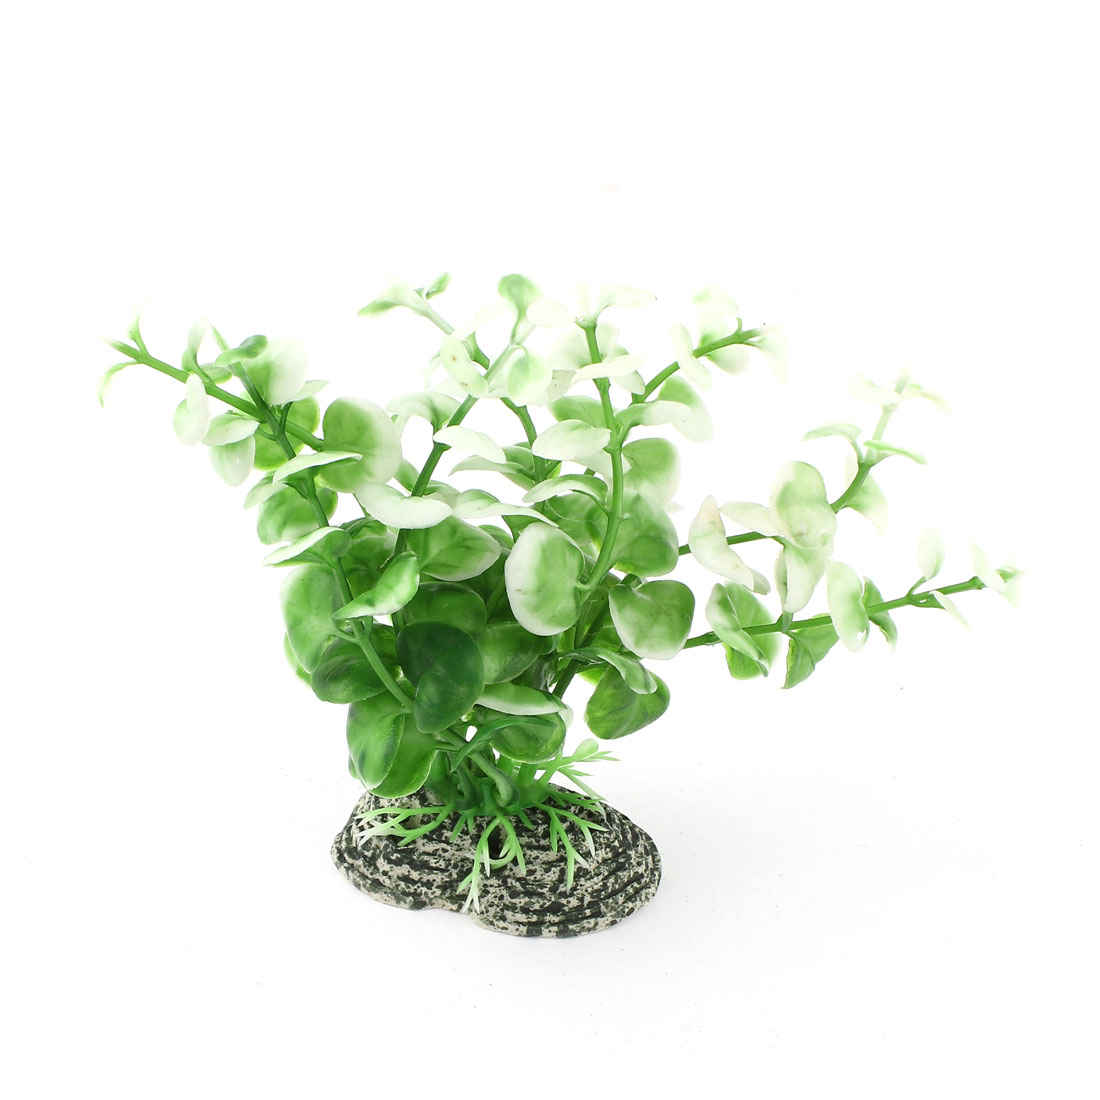 Aquarium Green White Plastic Artificial Grass Plant Decoration 12cm Height